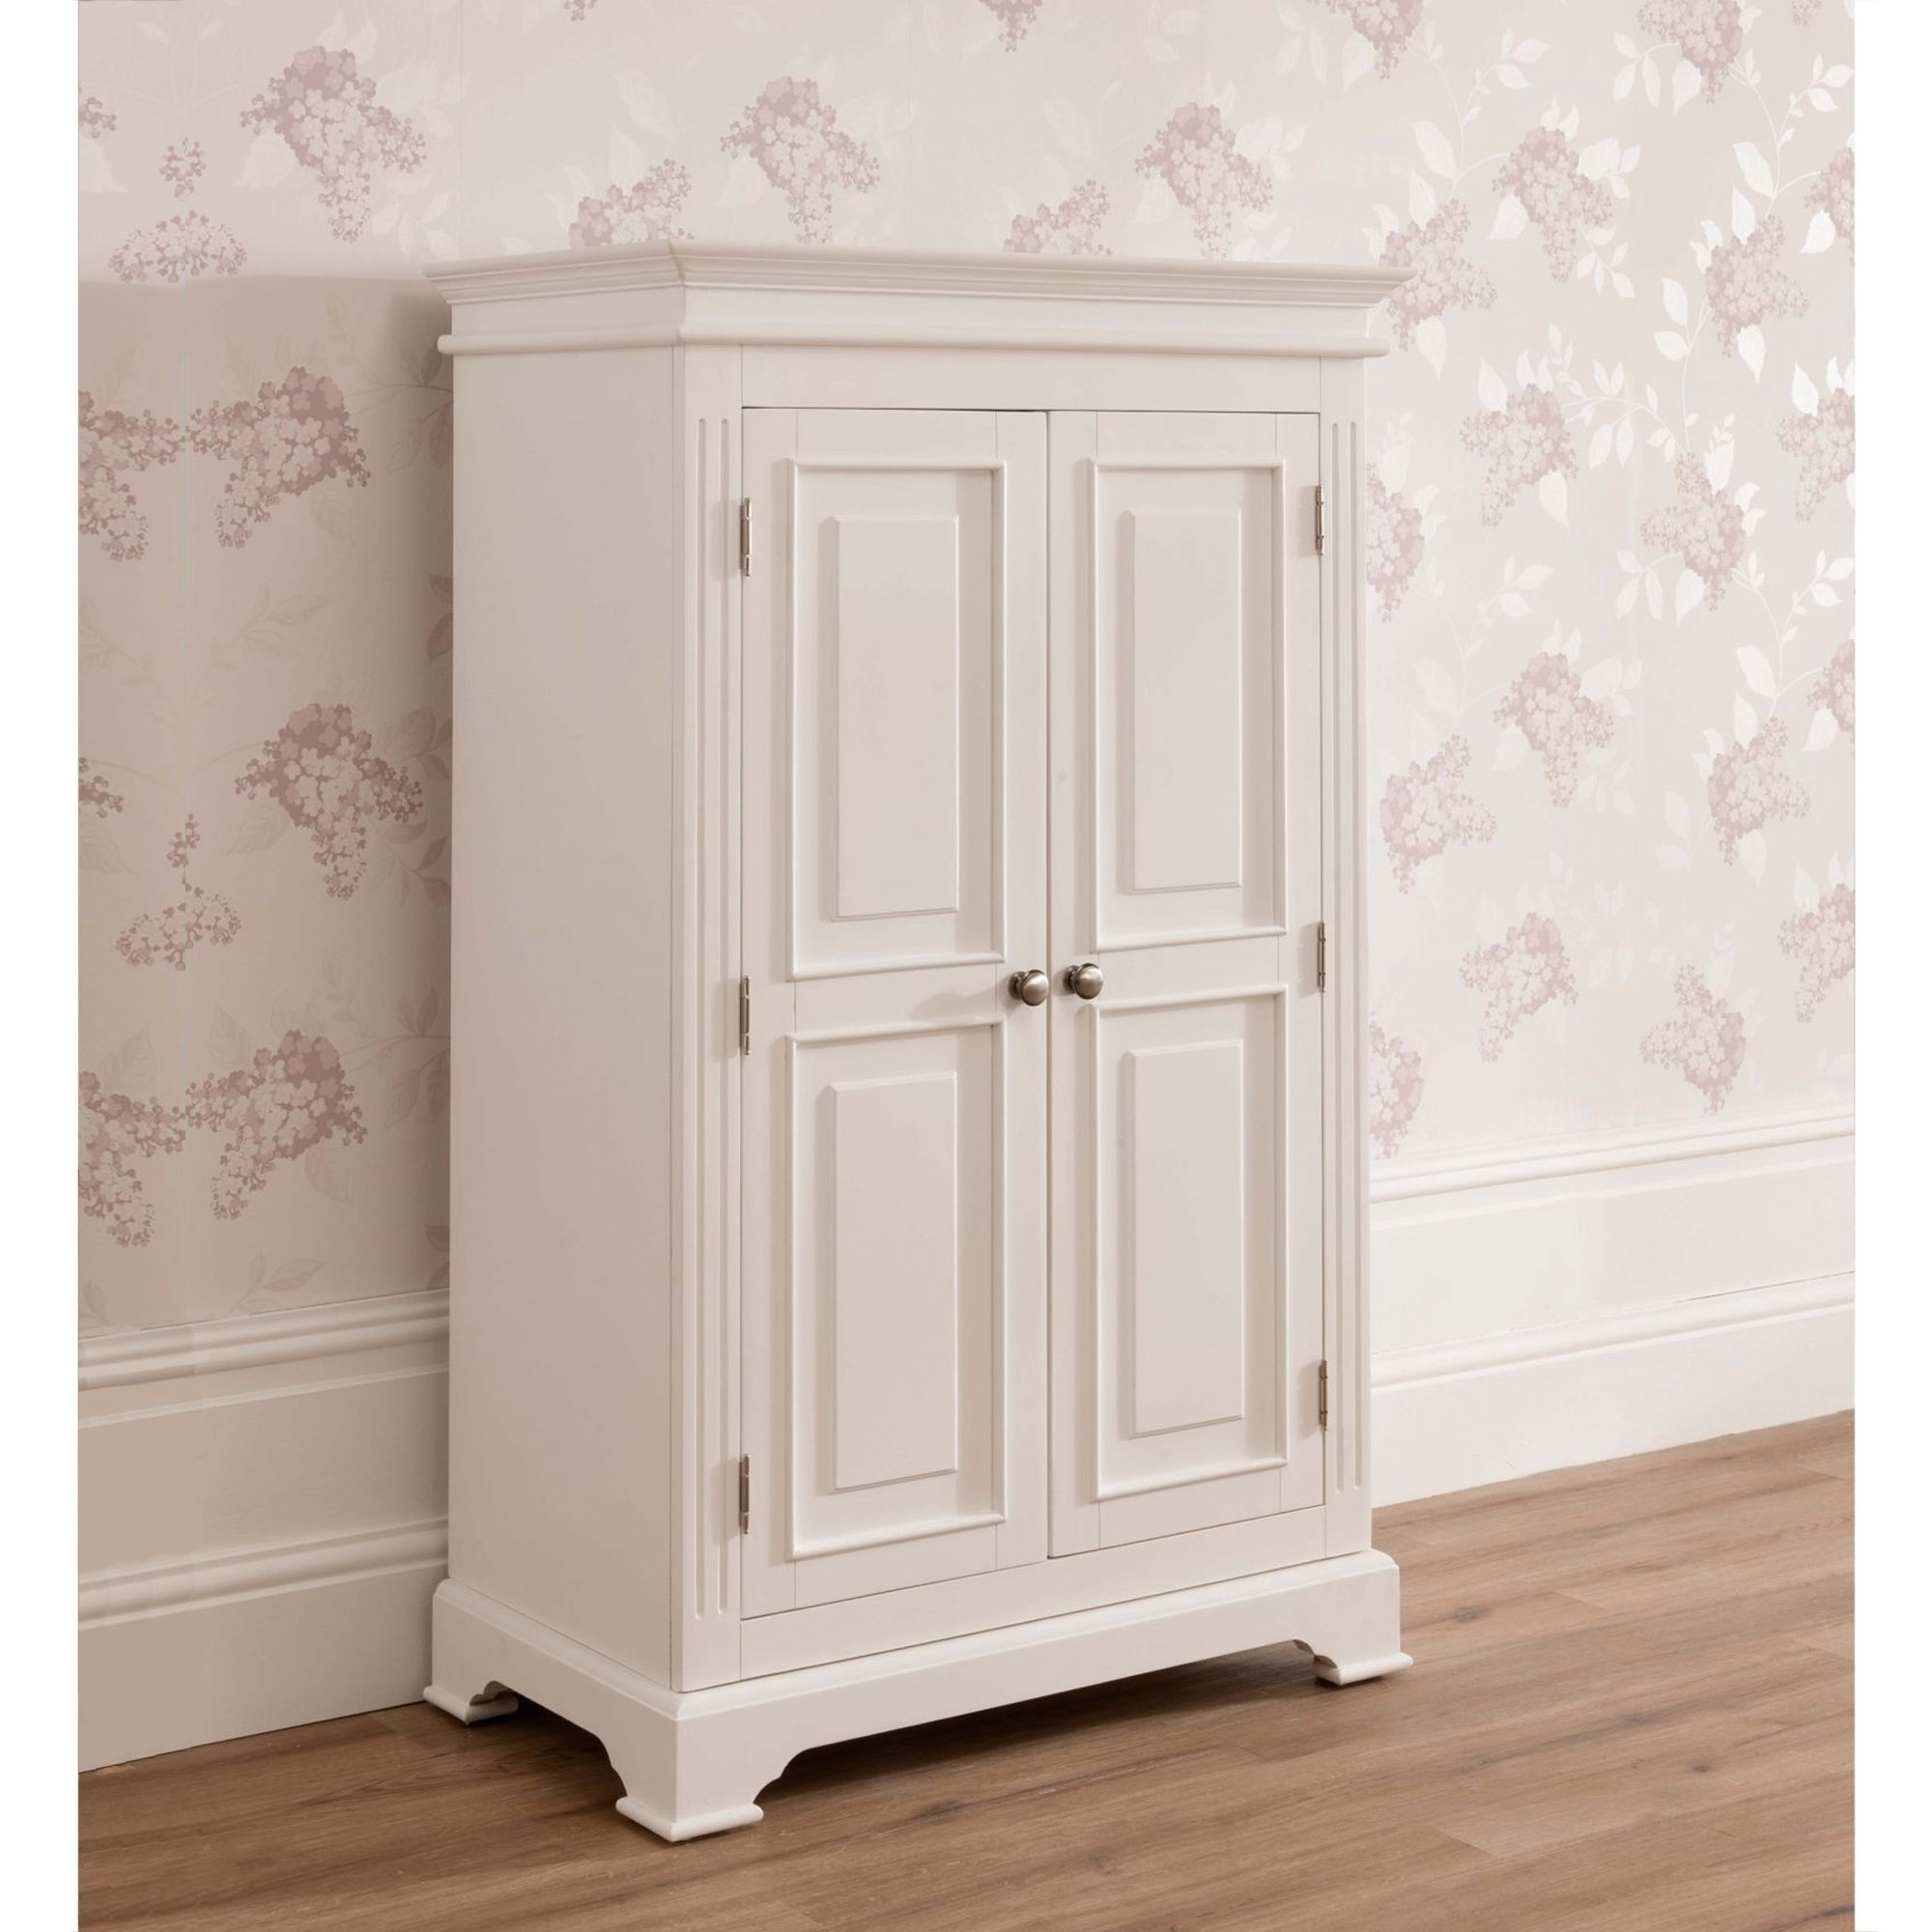 Well Known Sophia Kids Shabby Chic Wardrobe Works Wonderful Alongside Our Throughout Sophia Wardrobes (View 2 of 15)